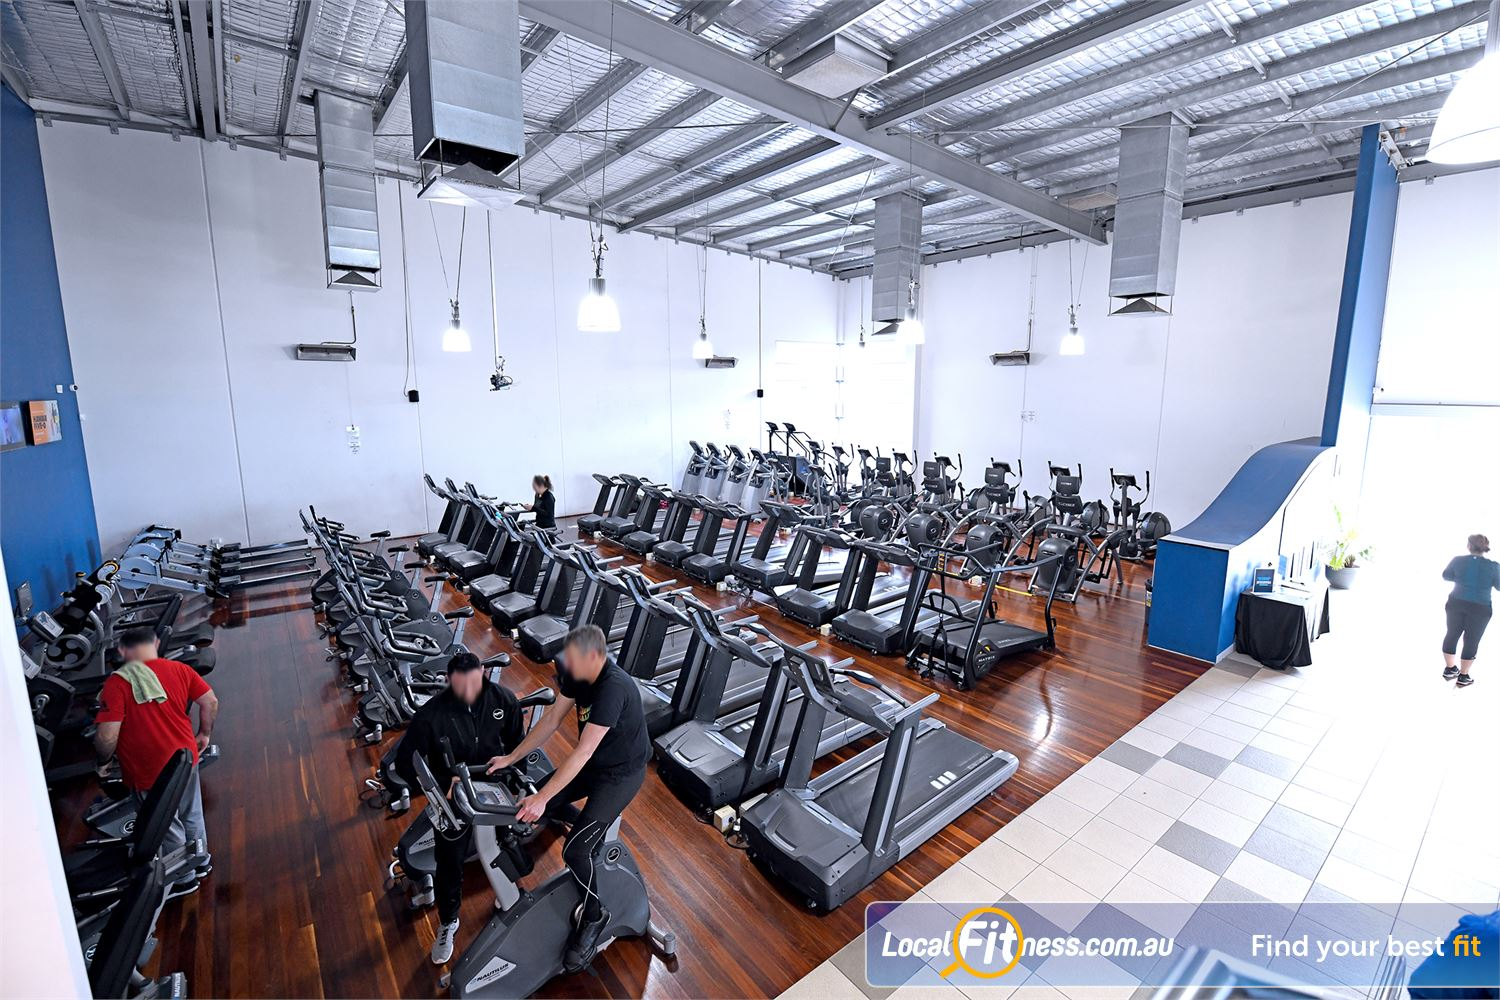 Goodlife Health Clubs Near South Geelong Get cardio access 24 hours day, 365 days a year.